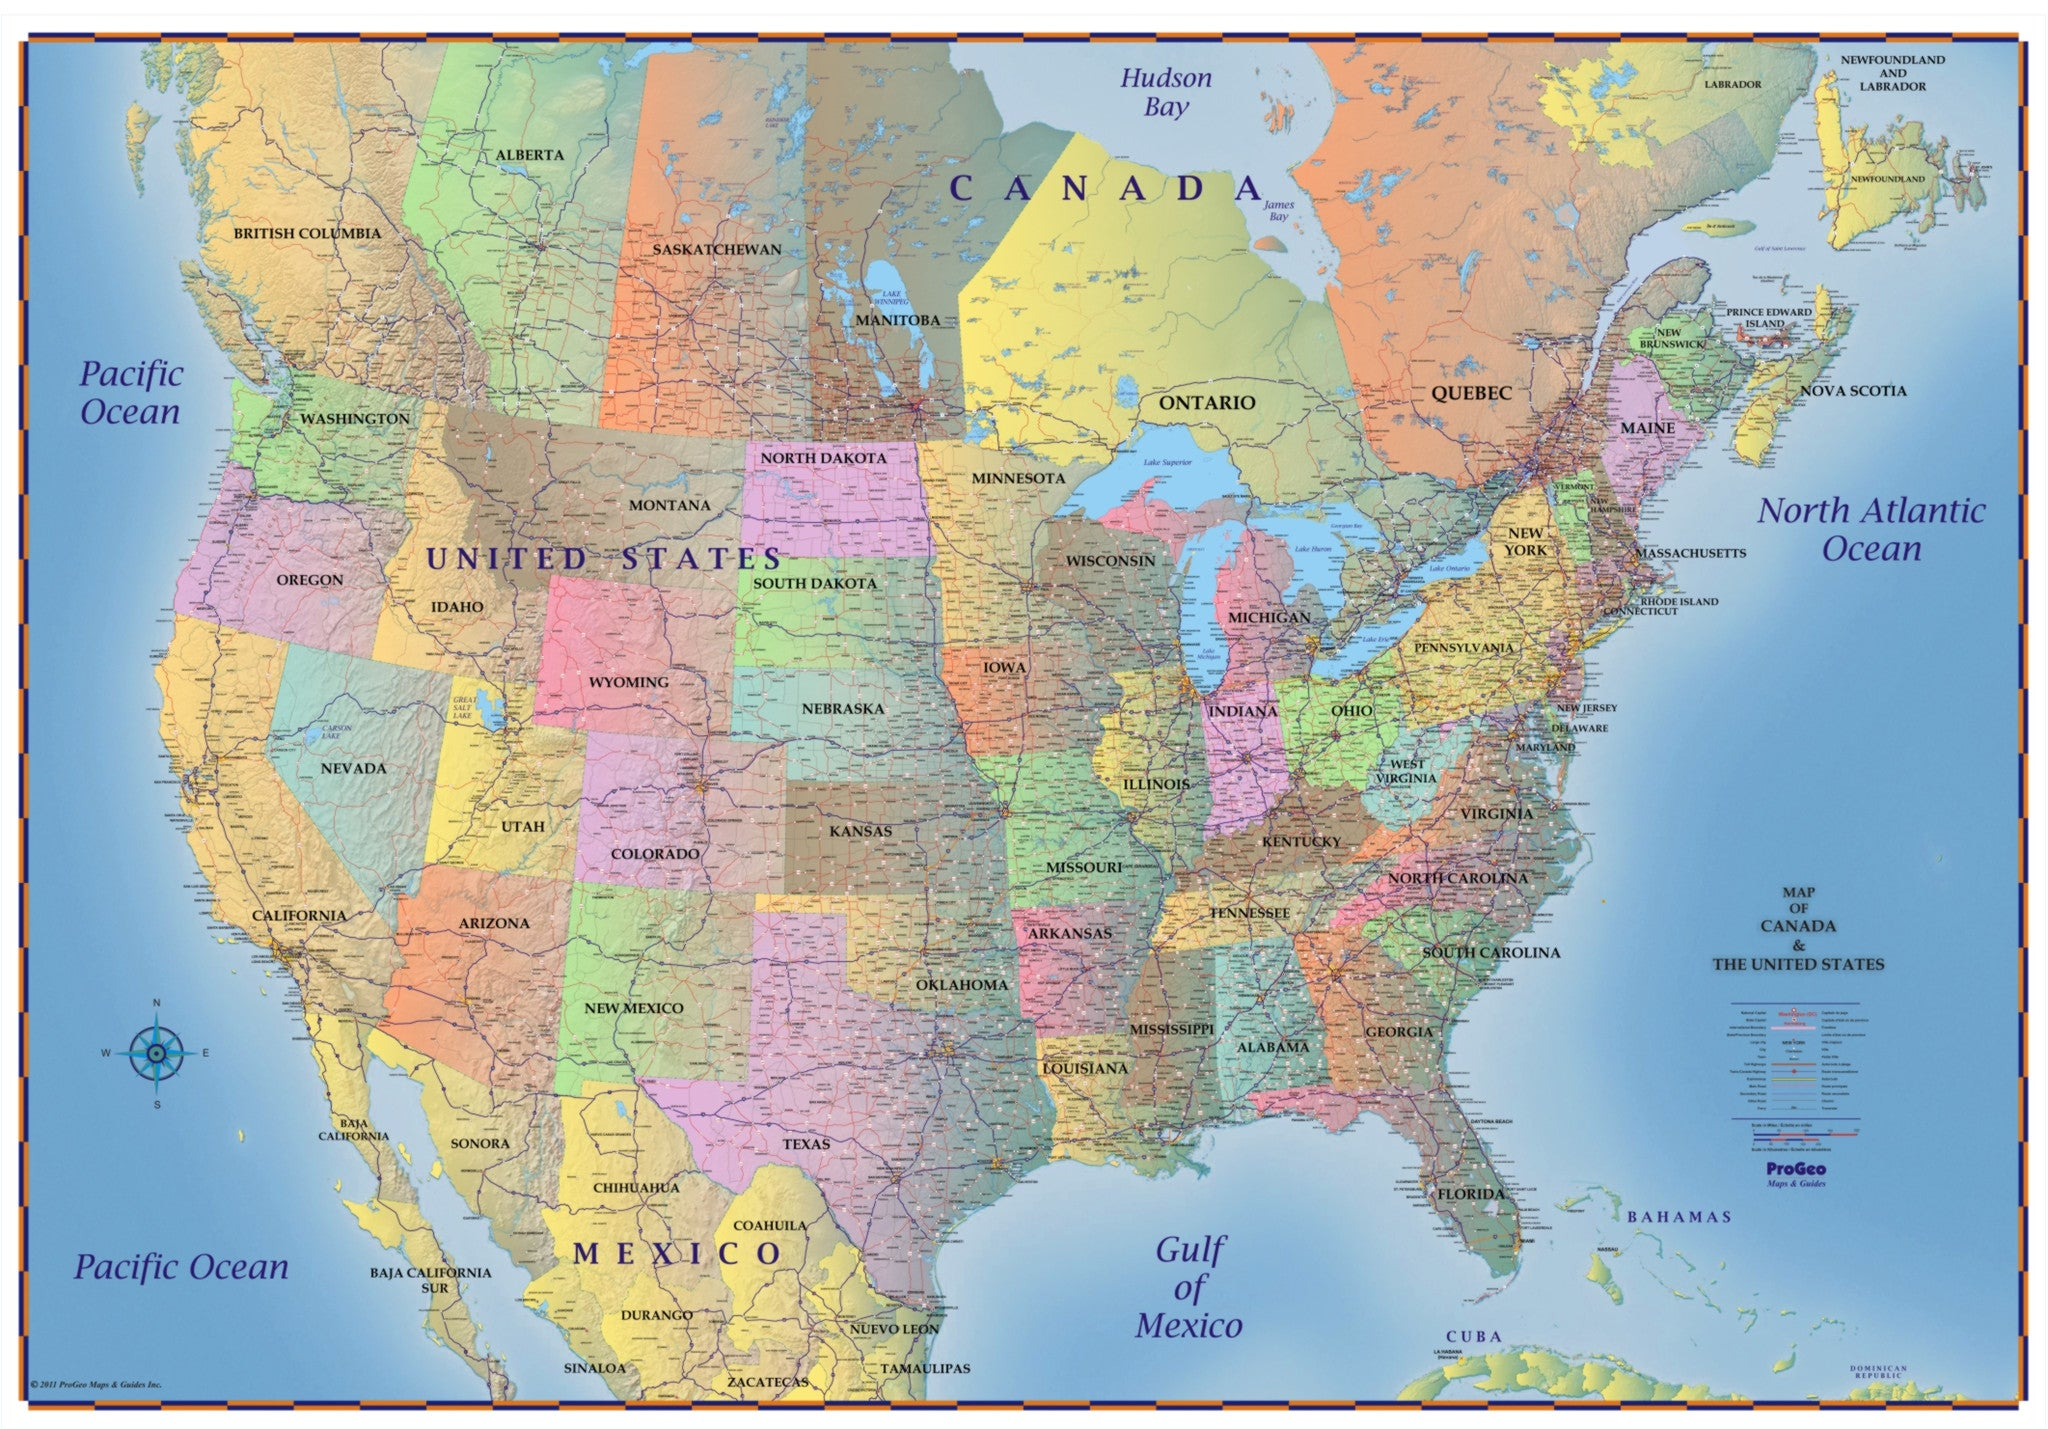 truckers wall map of canada united states and northern mexico 2018